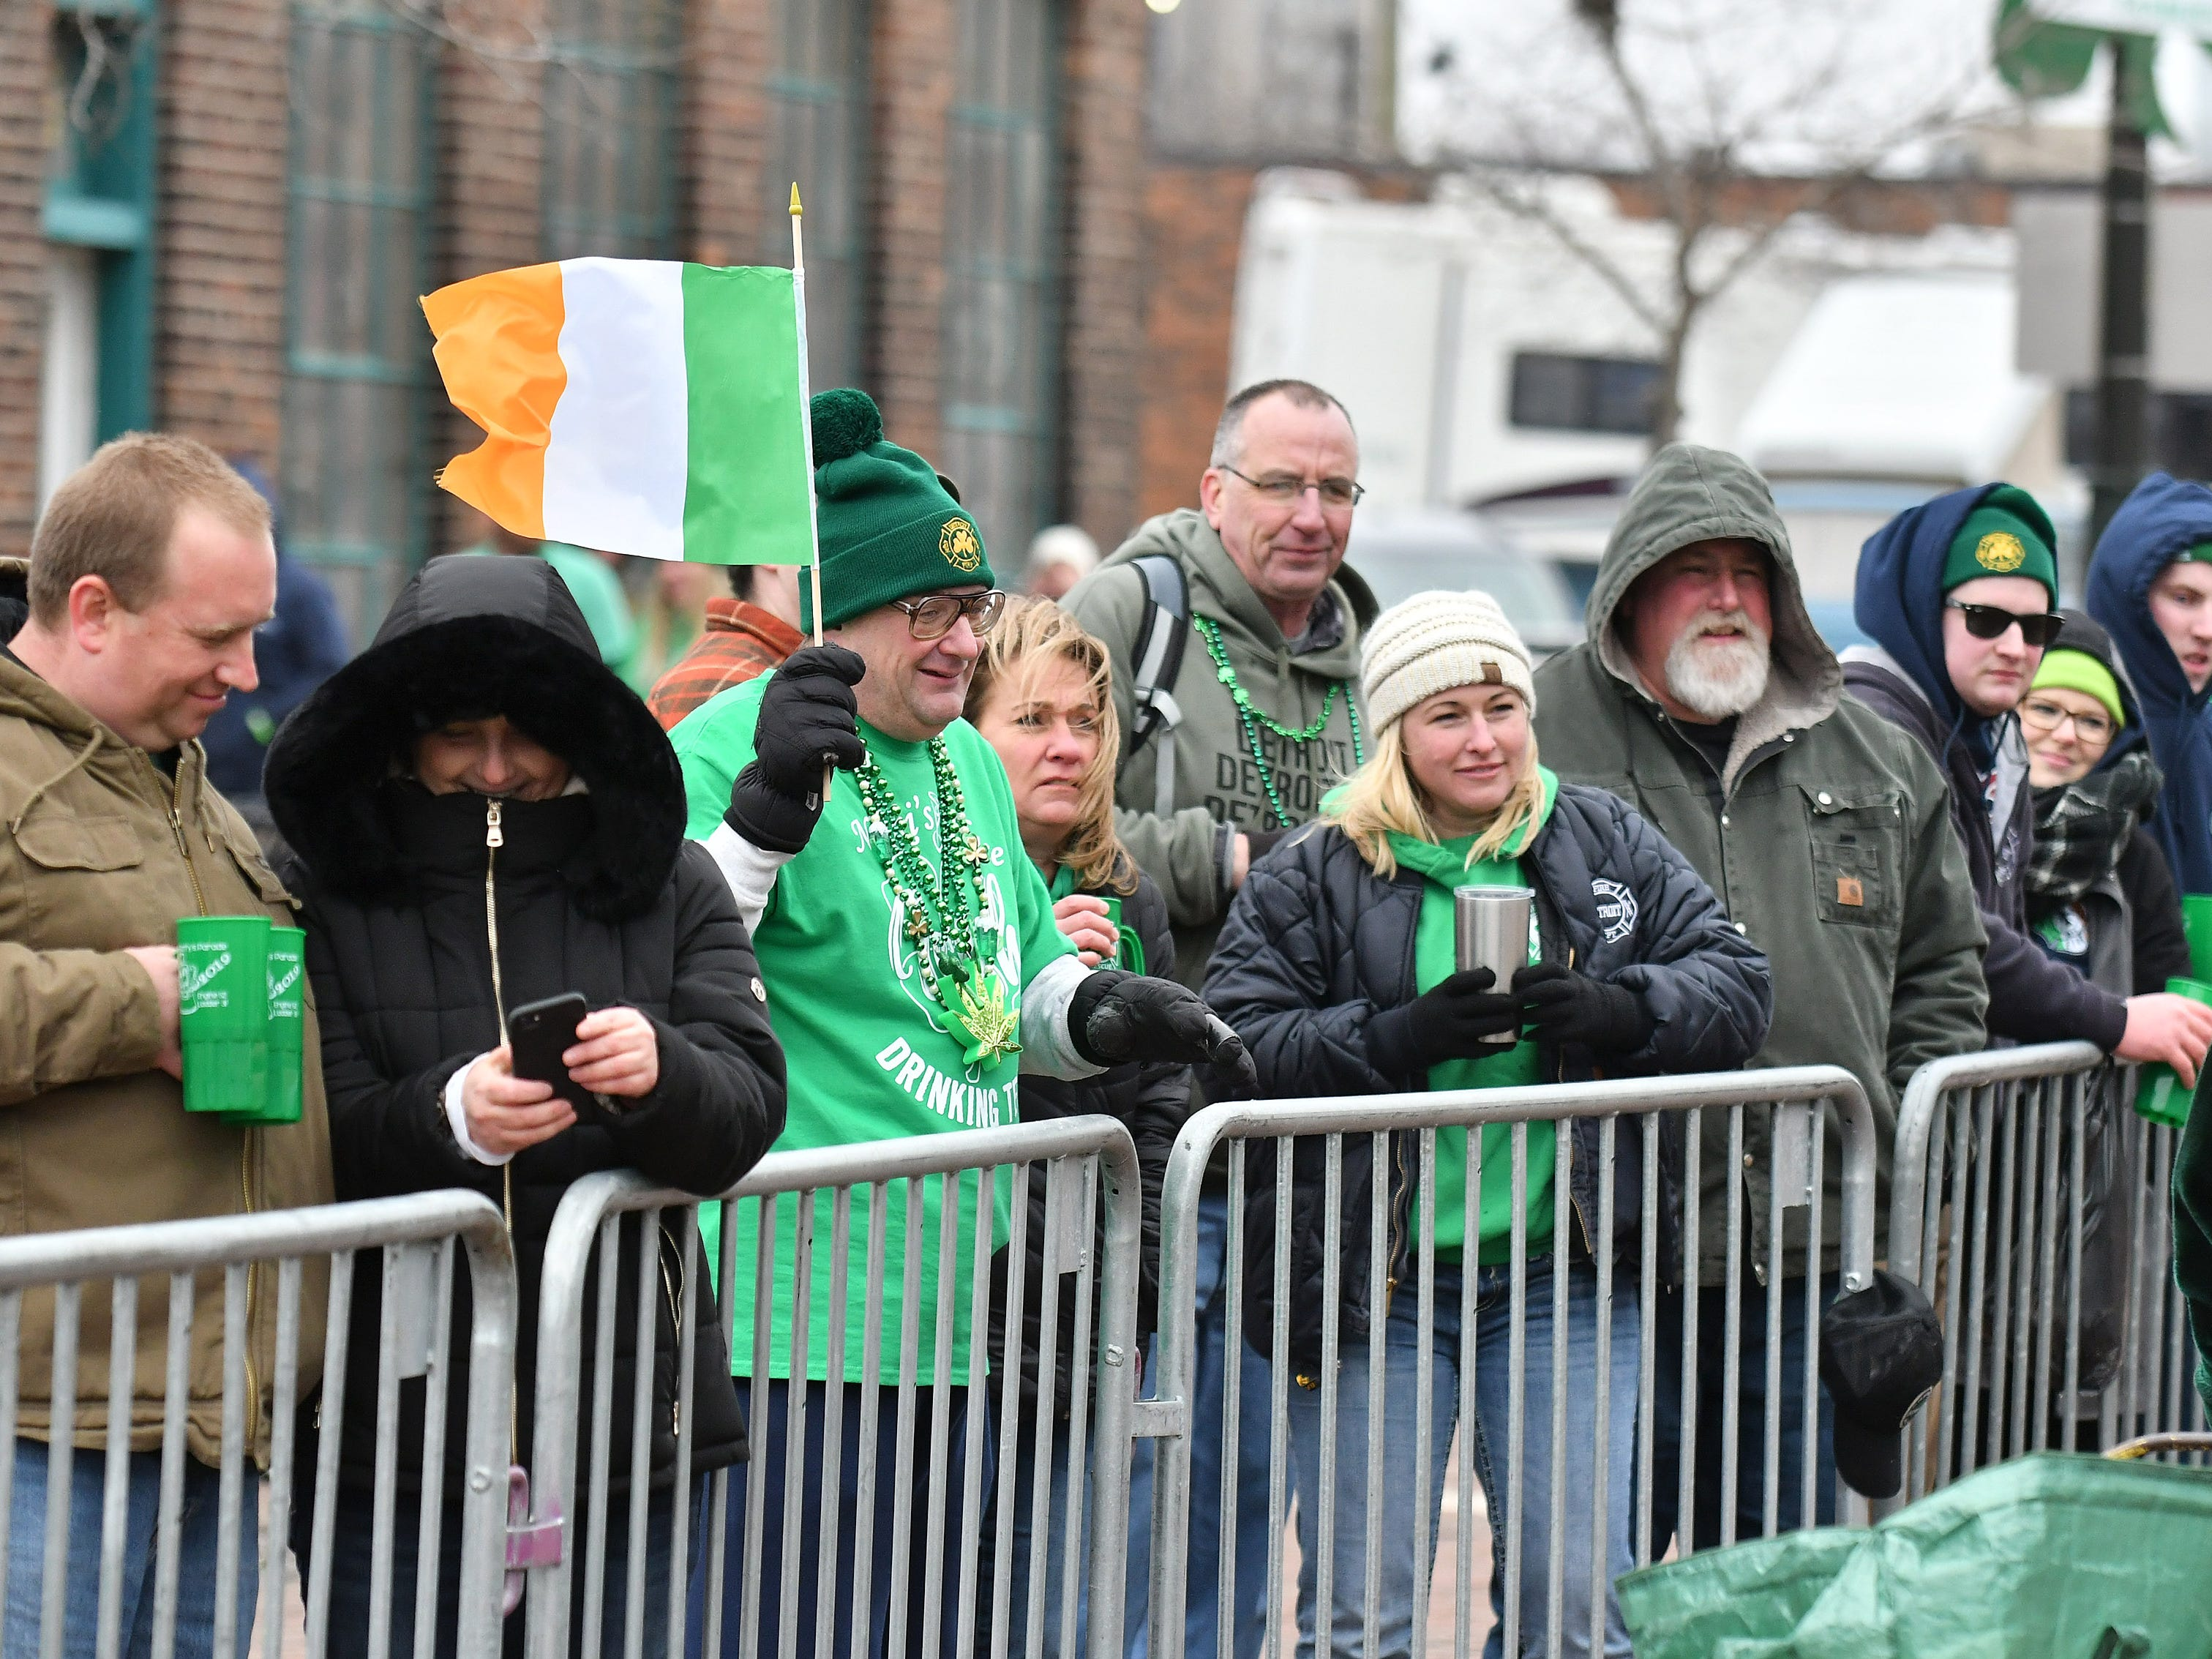 Dave Long, 52, of Detroit, center, holds an Irish flag at the parade.